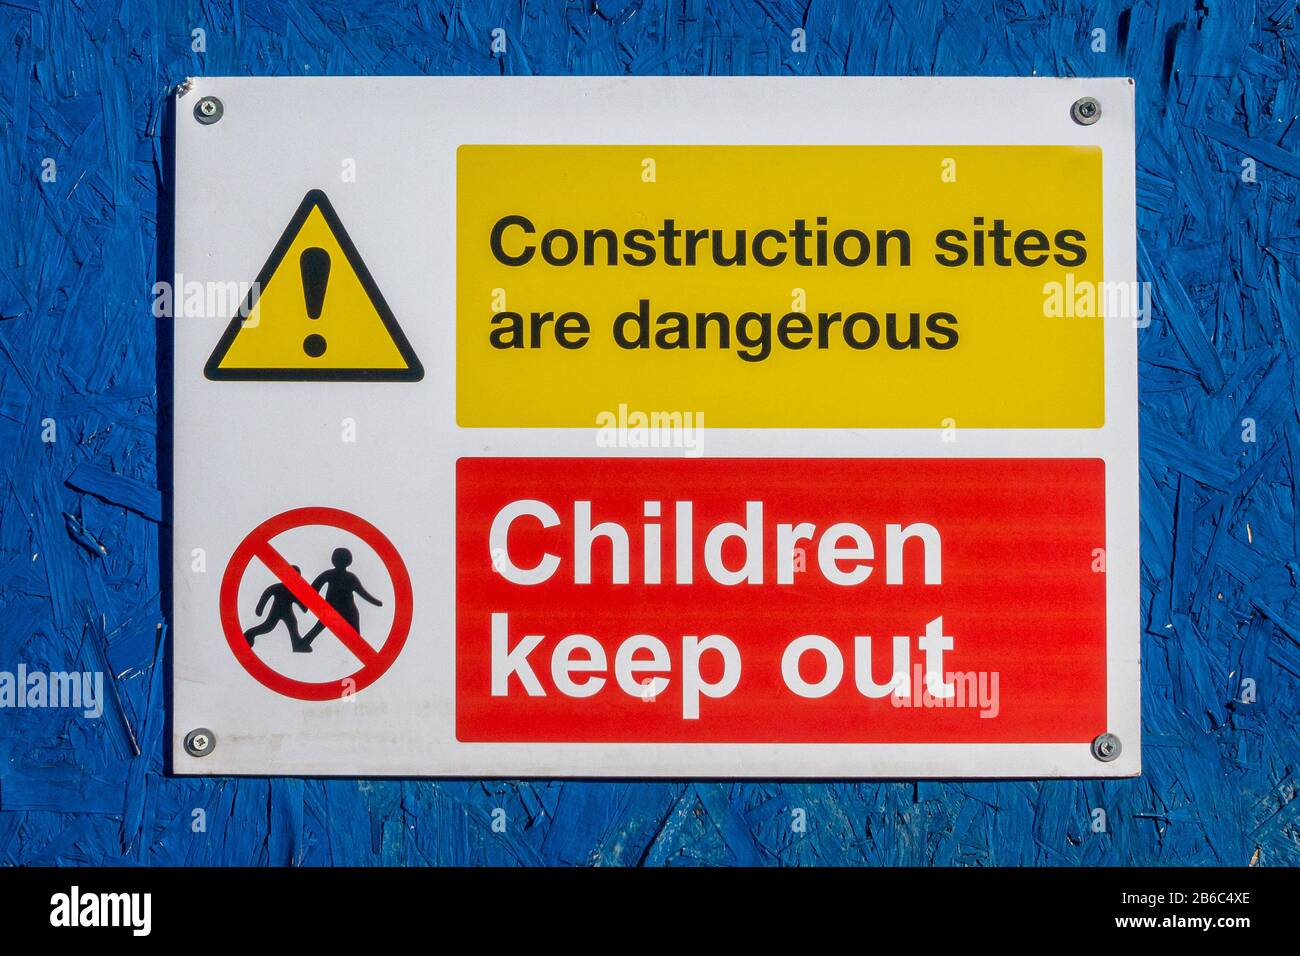 Warning building sites are dangerous keep children out safety sign